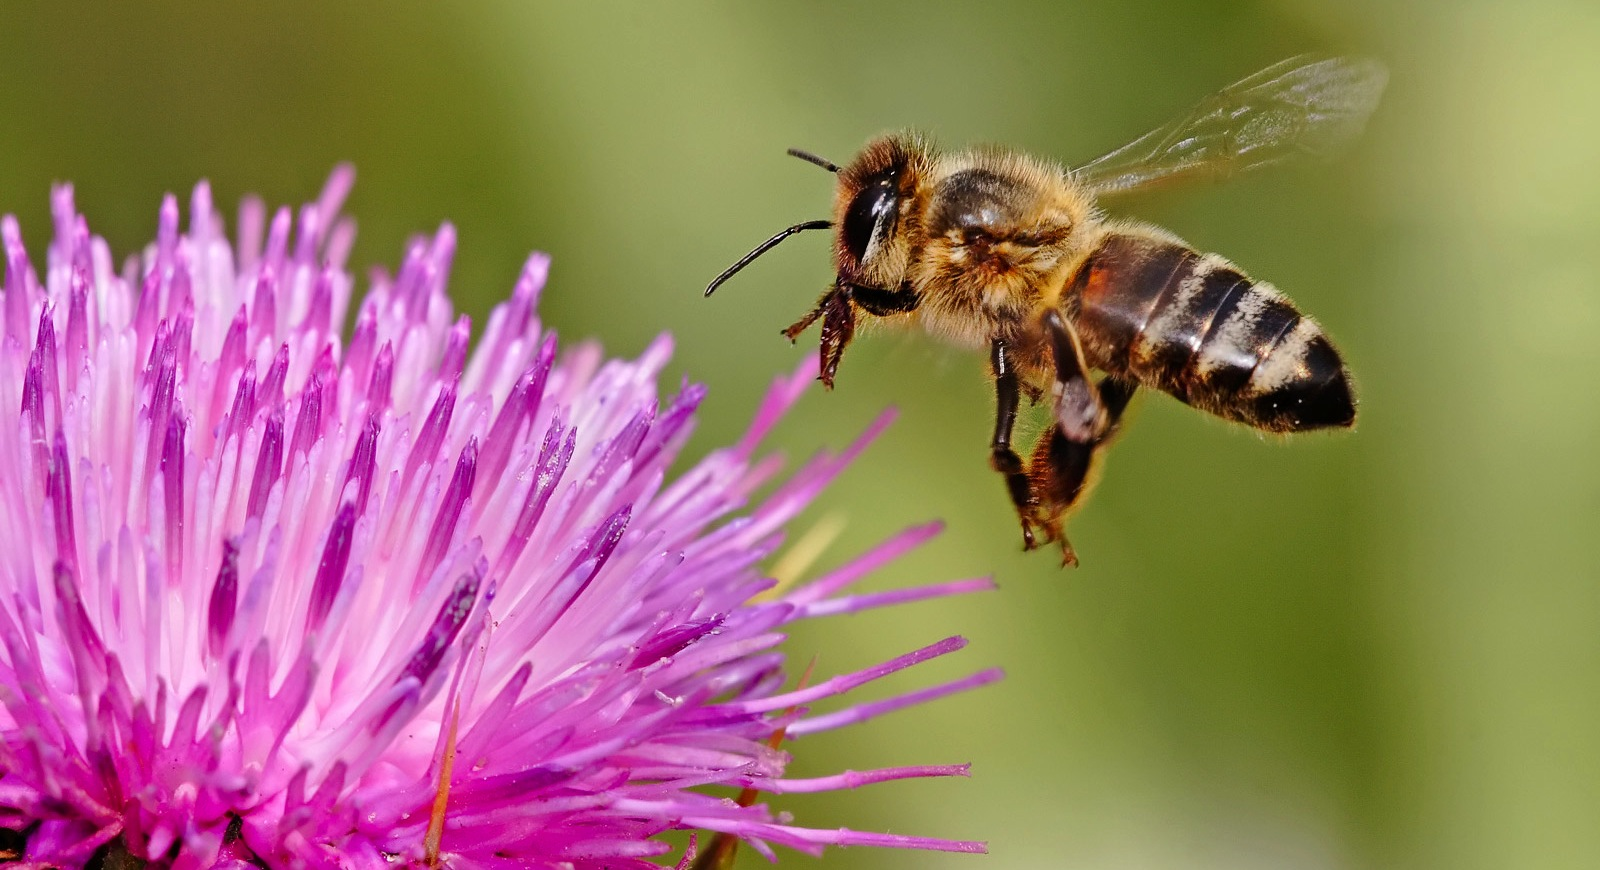 'Big agriculture has chance to help or hinder important pollinators', new research says